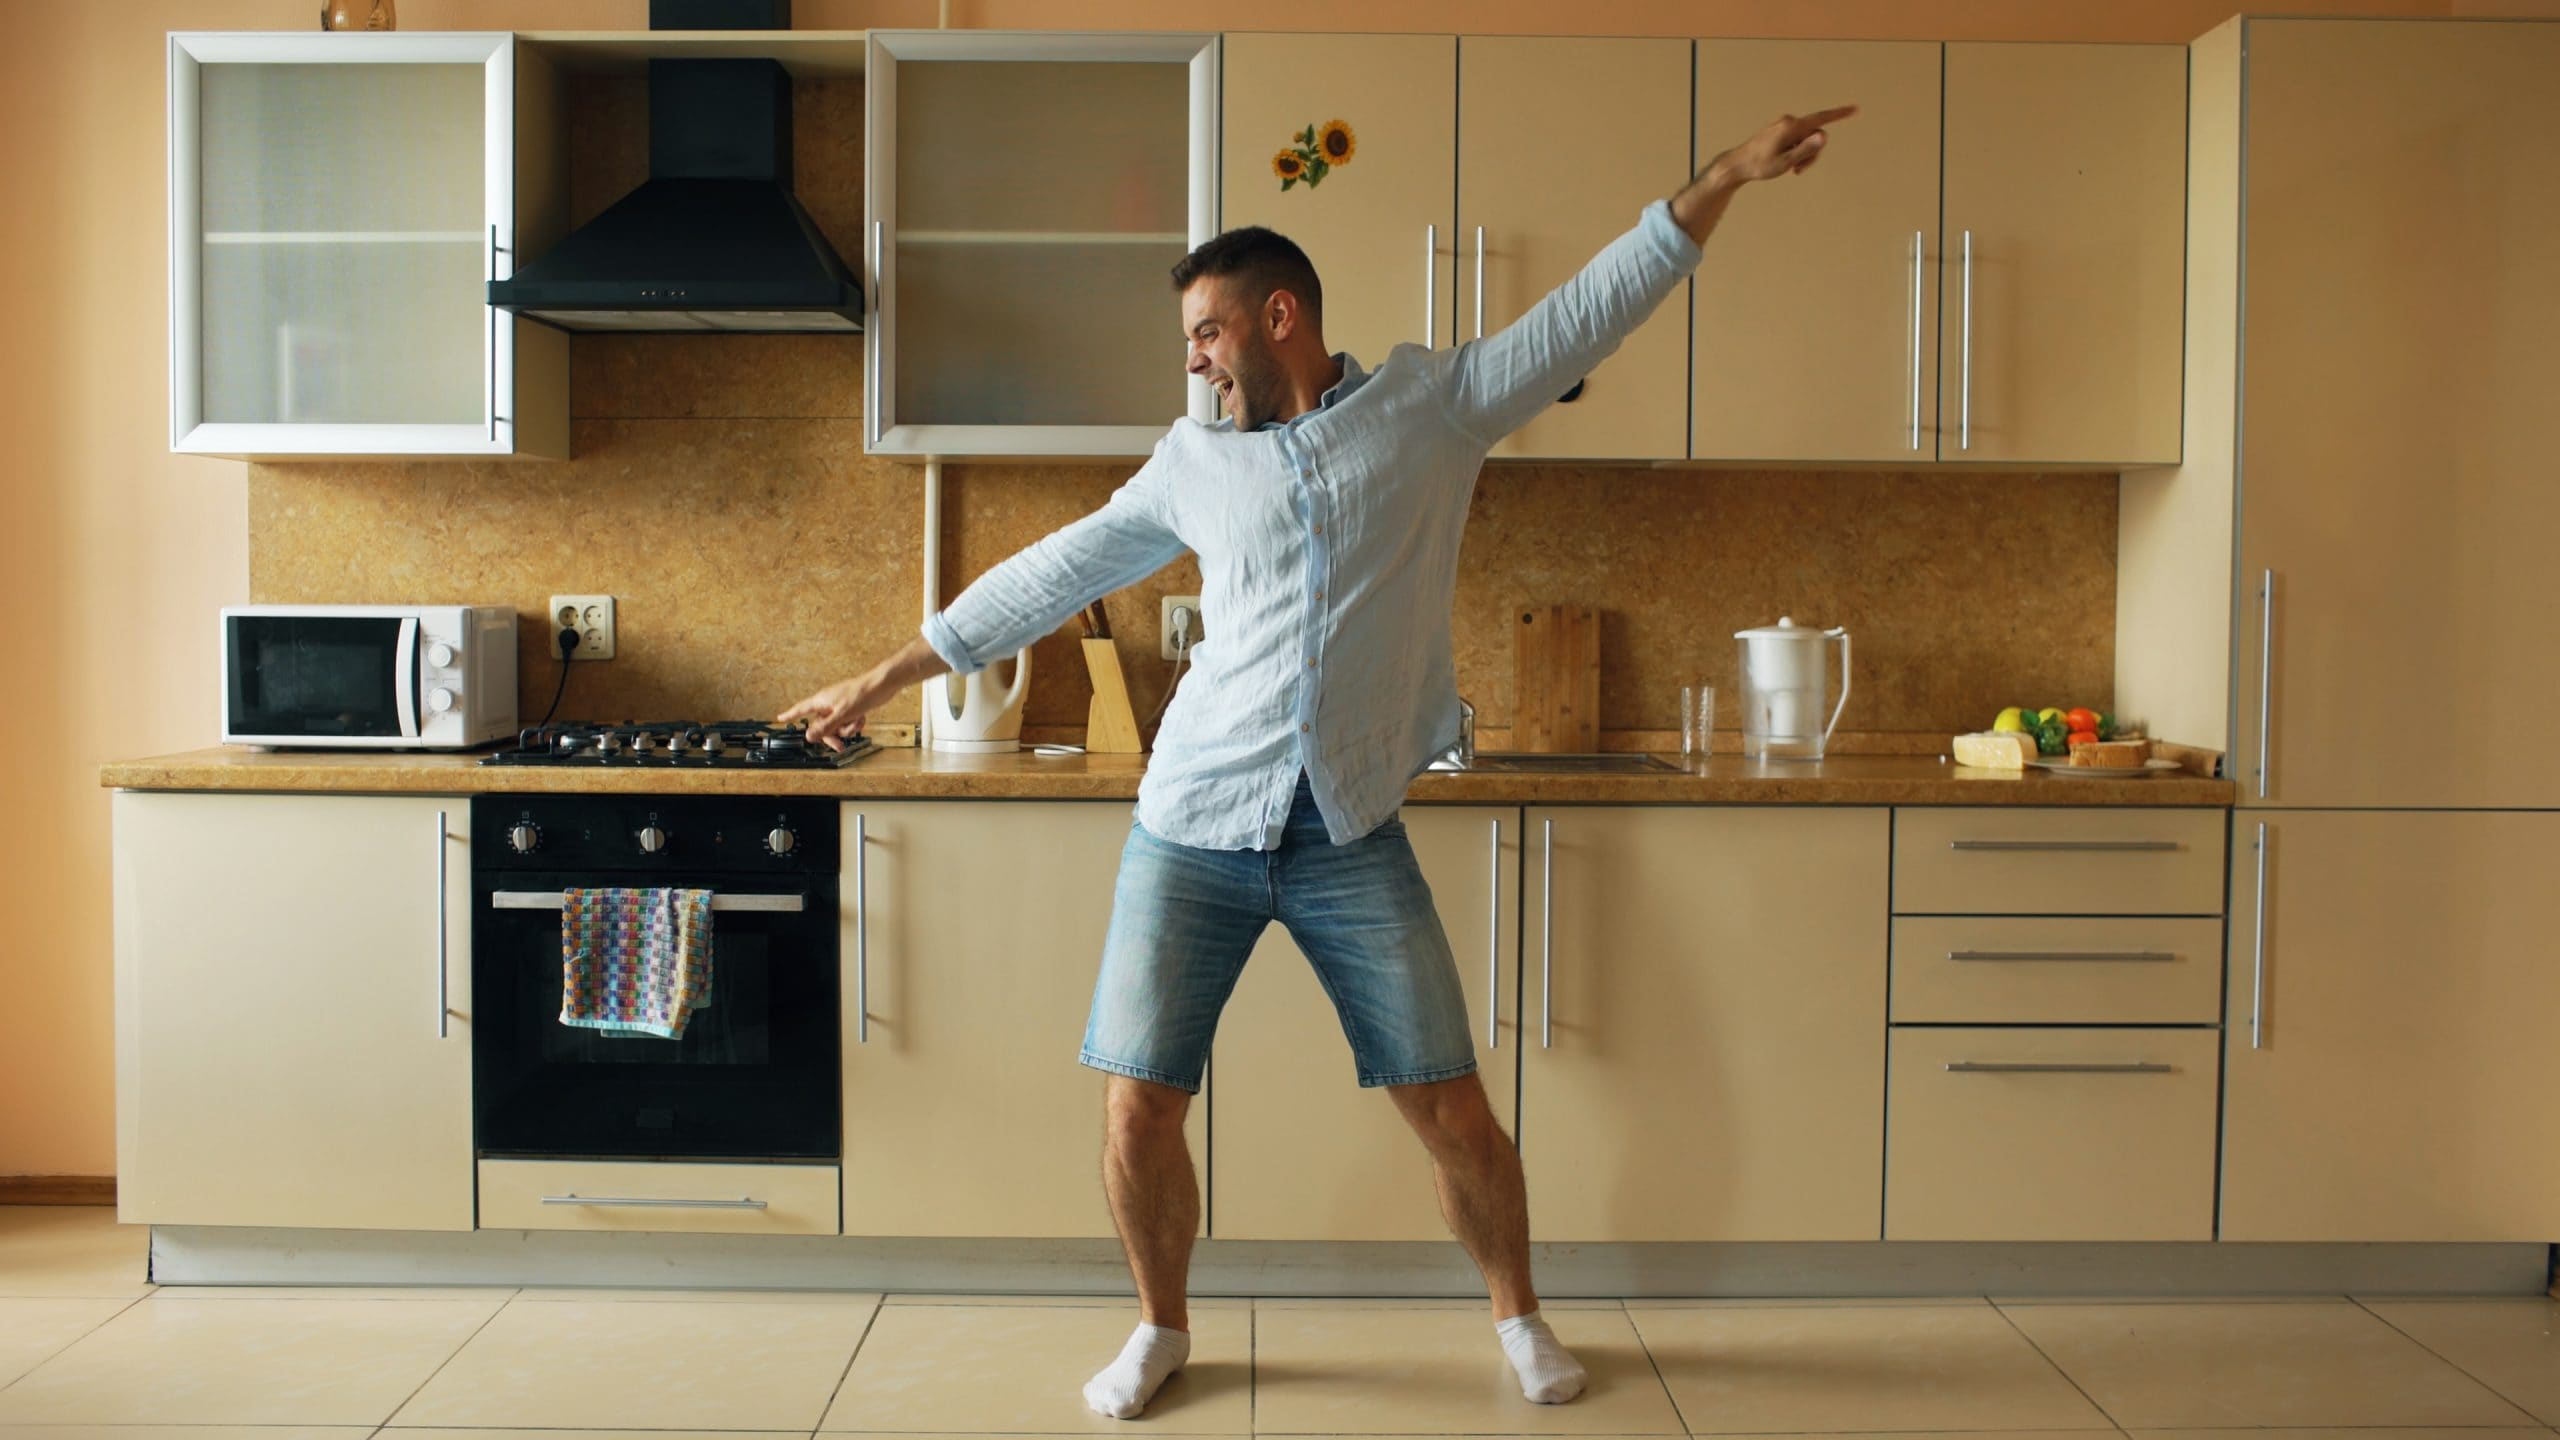 Man dancing in kitchen